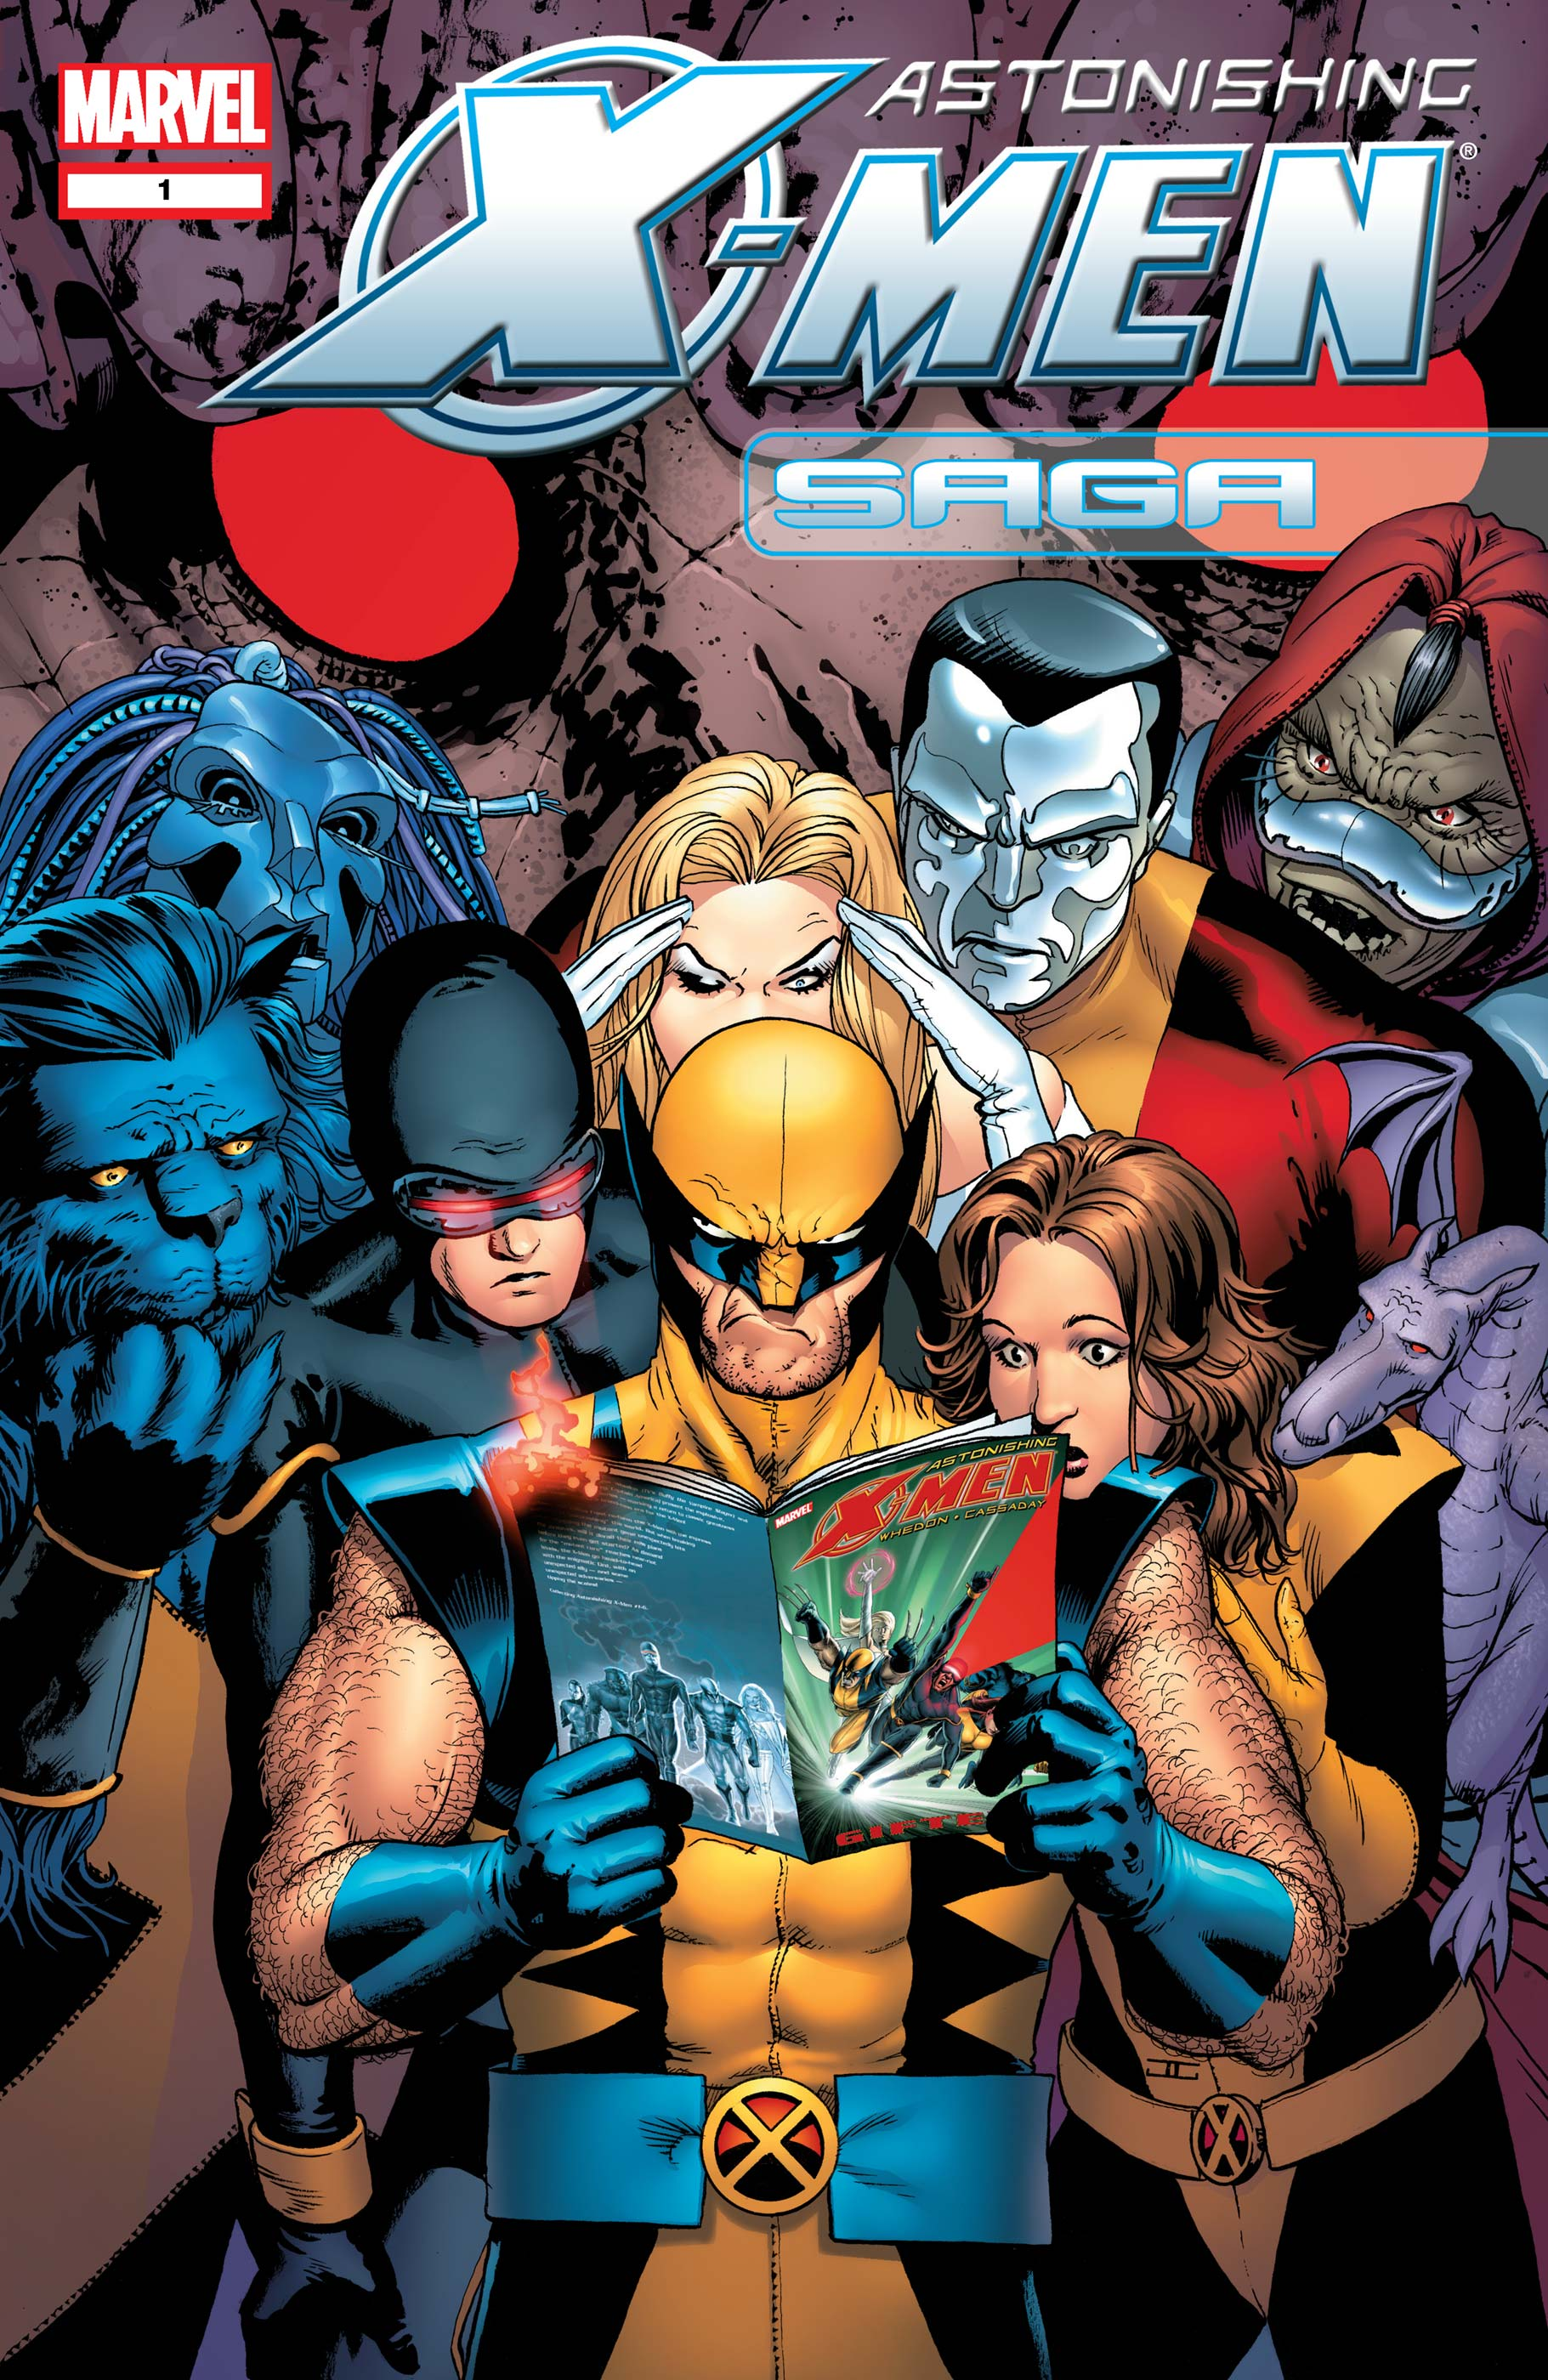 ASTONISHING X-MEN SAGA (2006) #1